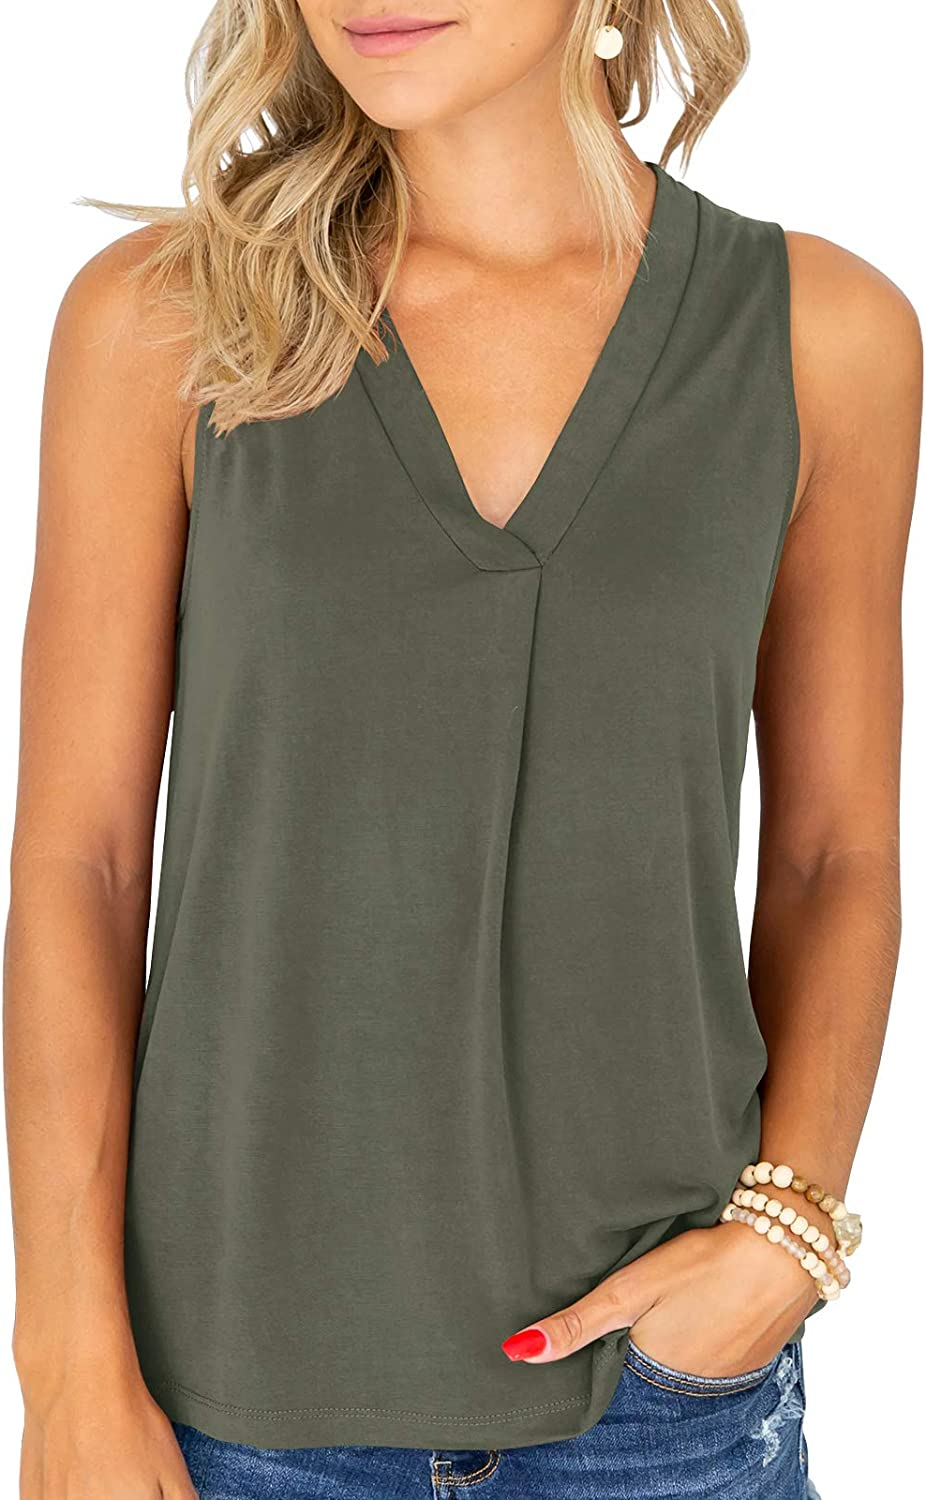 Syktkmx Womens Office Sleeveless Shirts V Neck Tank Tops Long Loose Solid Comfy Tee